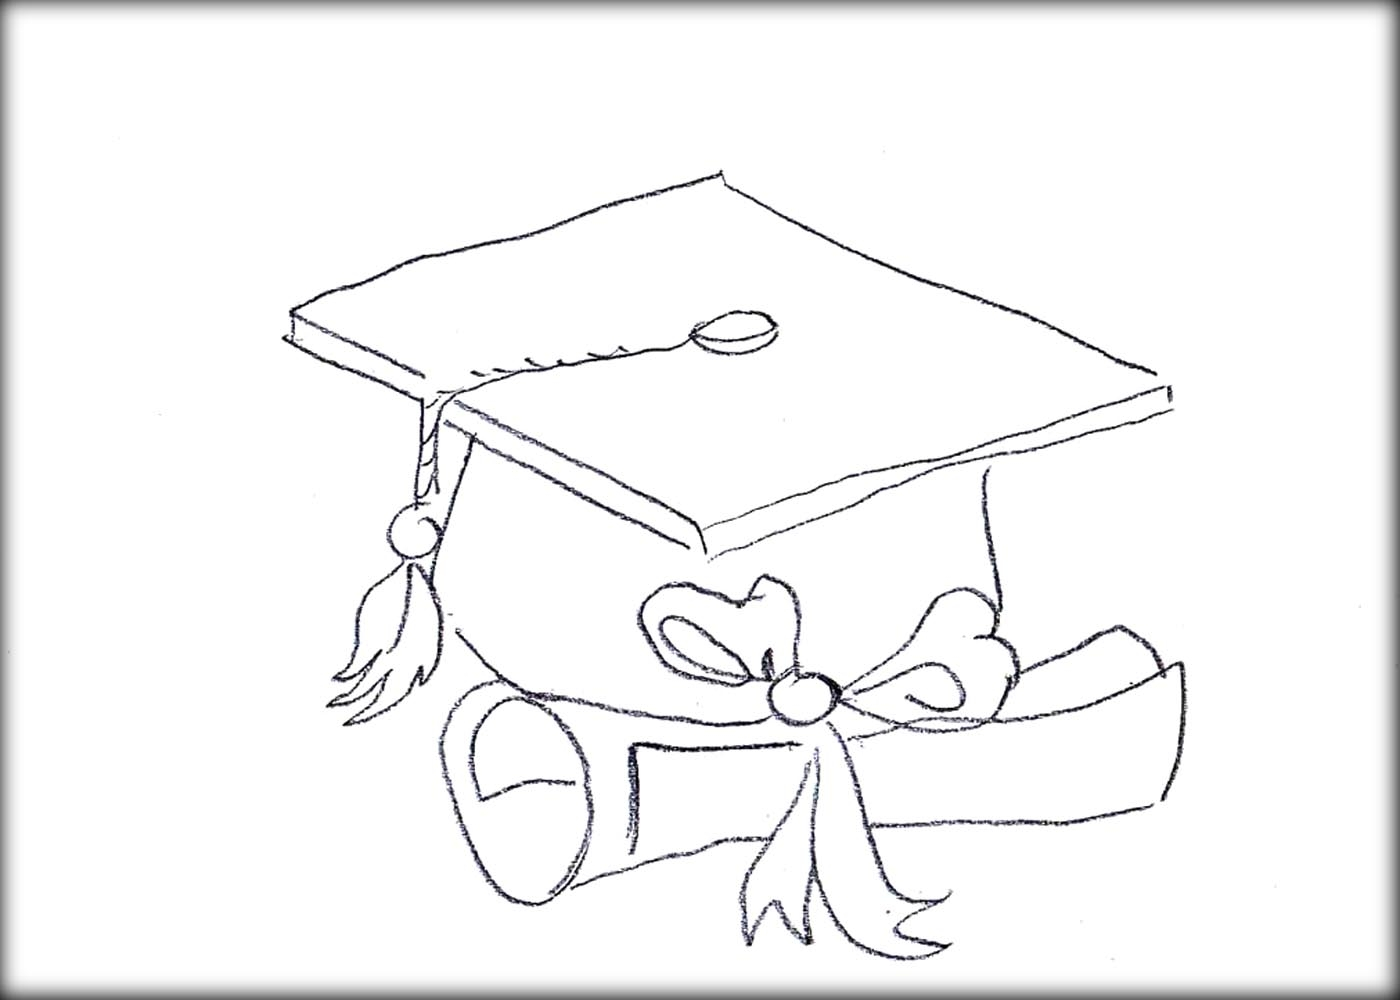 graduation cap coloring page - graduation cap coloring page